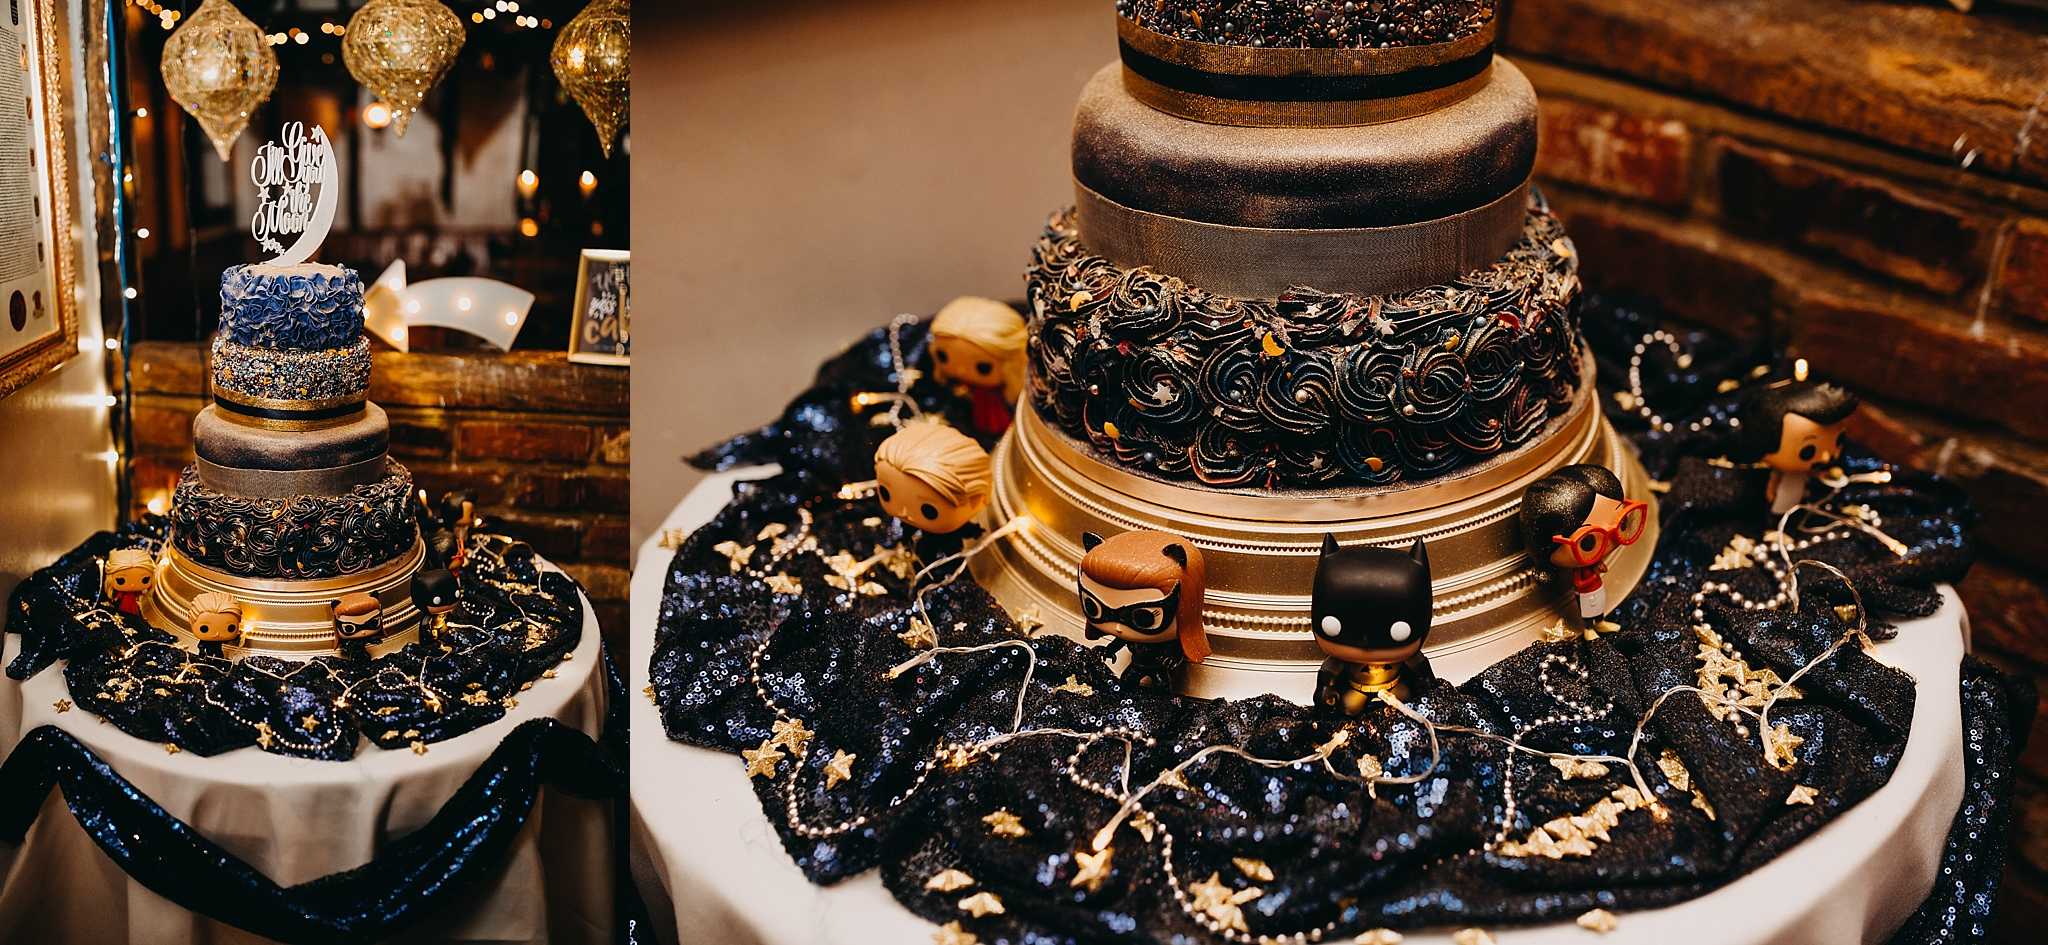 Peter Hugo Photography superhero wedding cake